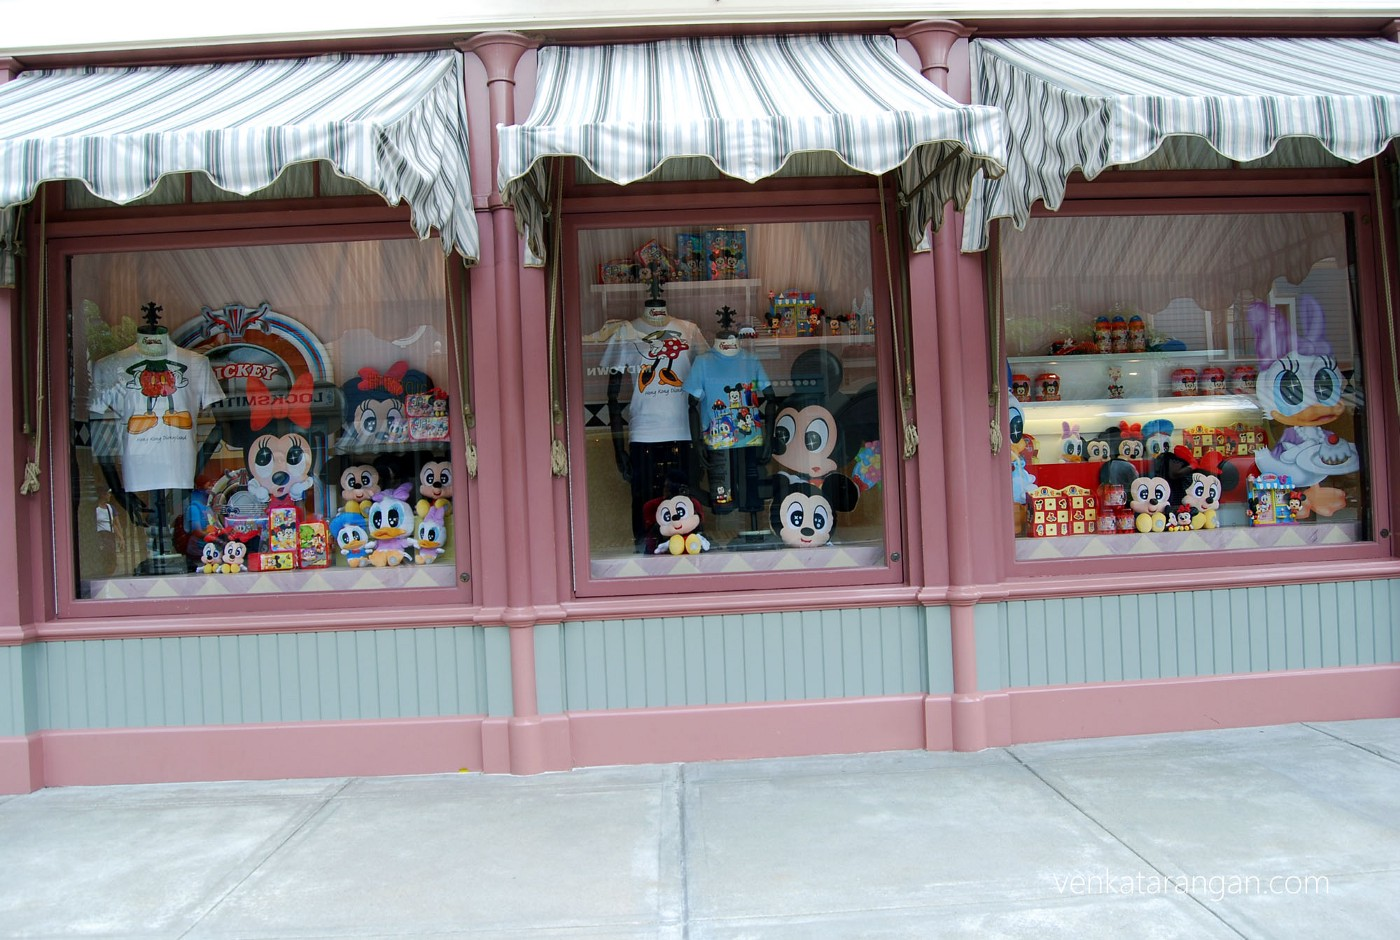 Whatever merchandise you dream, you can get them with Mickey branding here